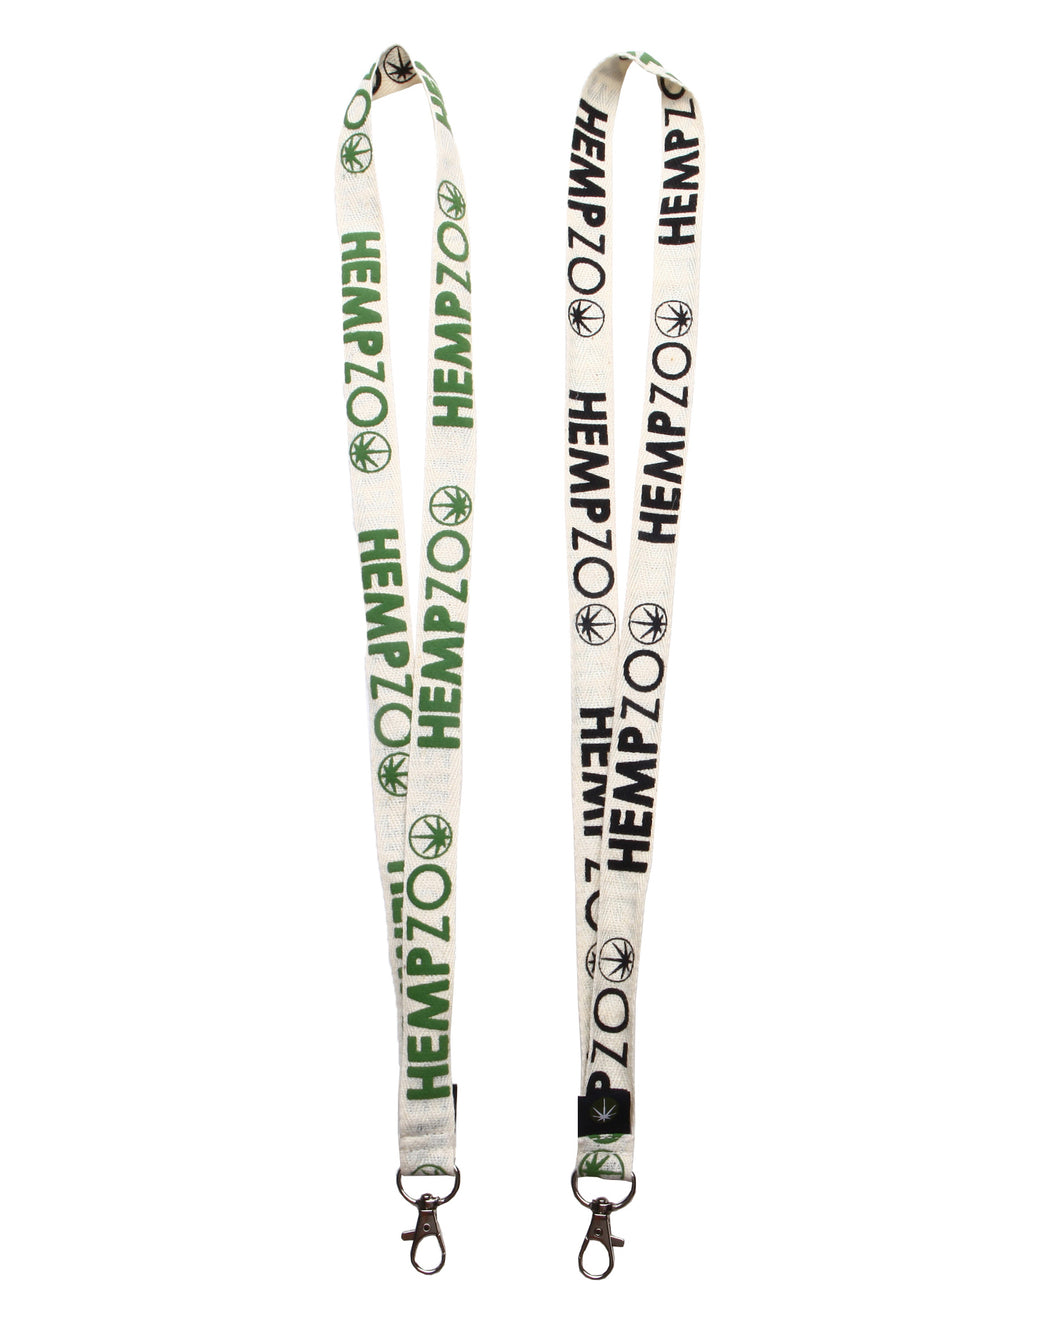 HEMP LANYARD - HEMPZOO Sustainable organic hemp cannabis clothing hats accessories